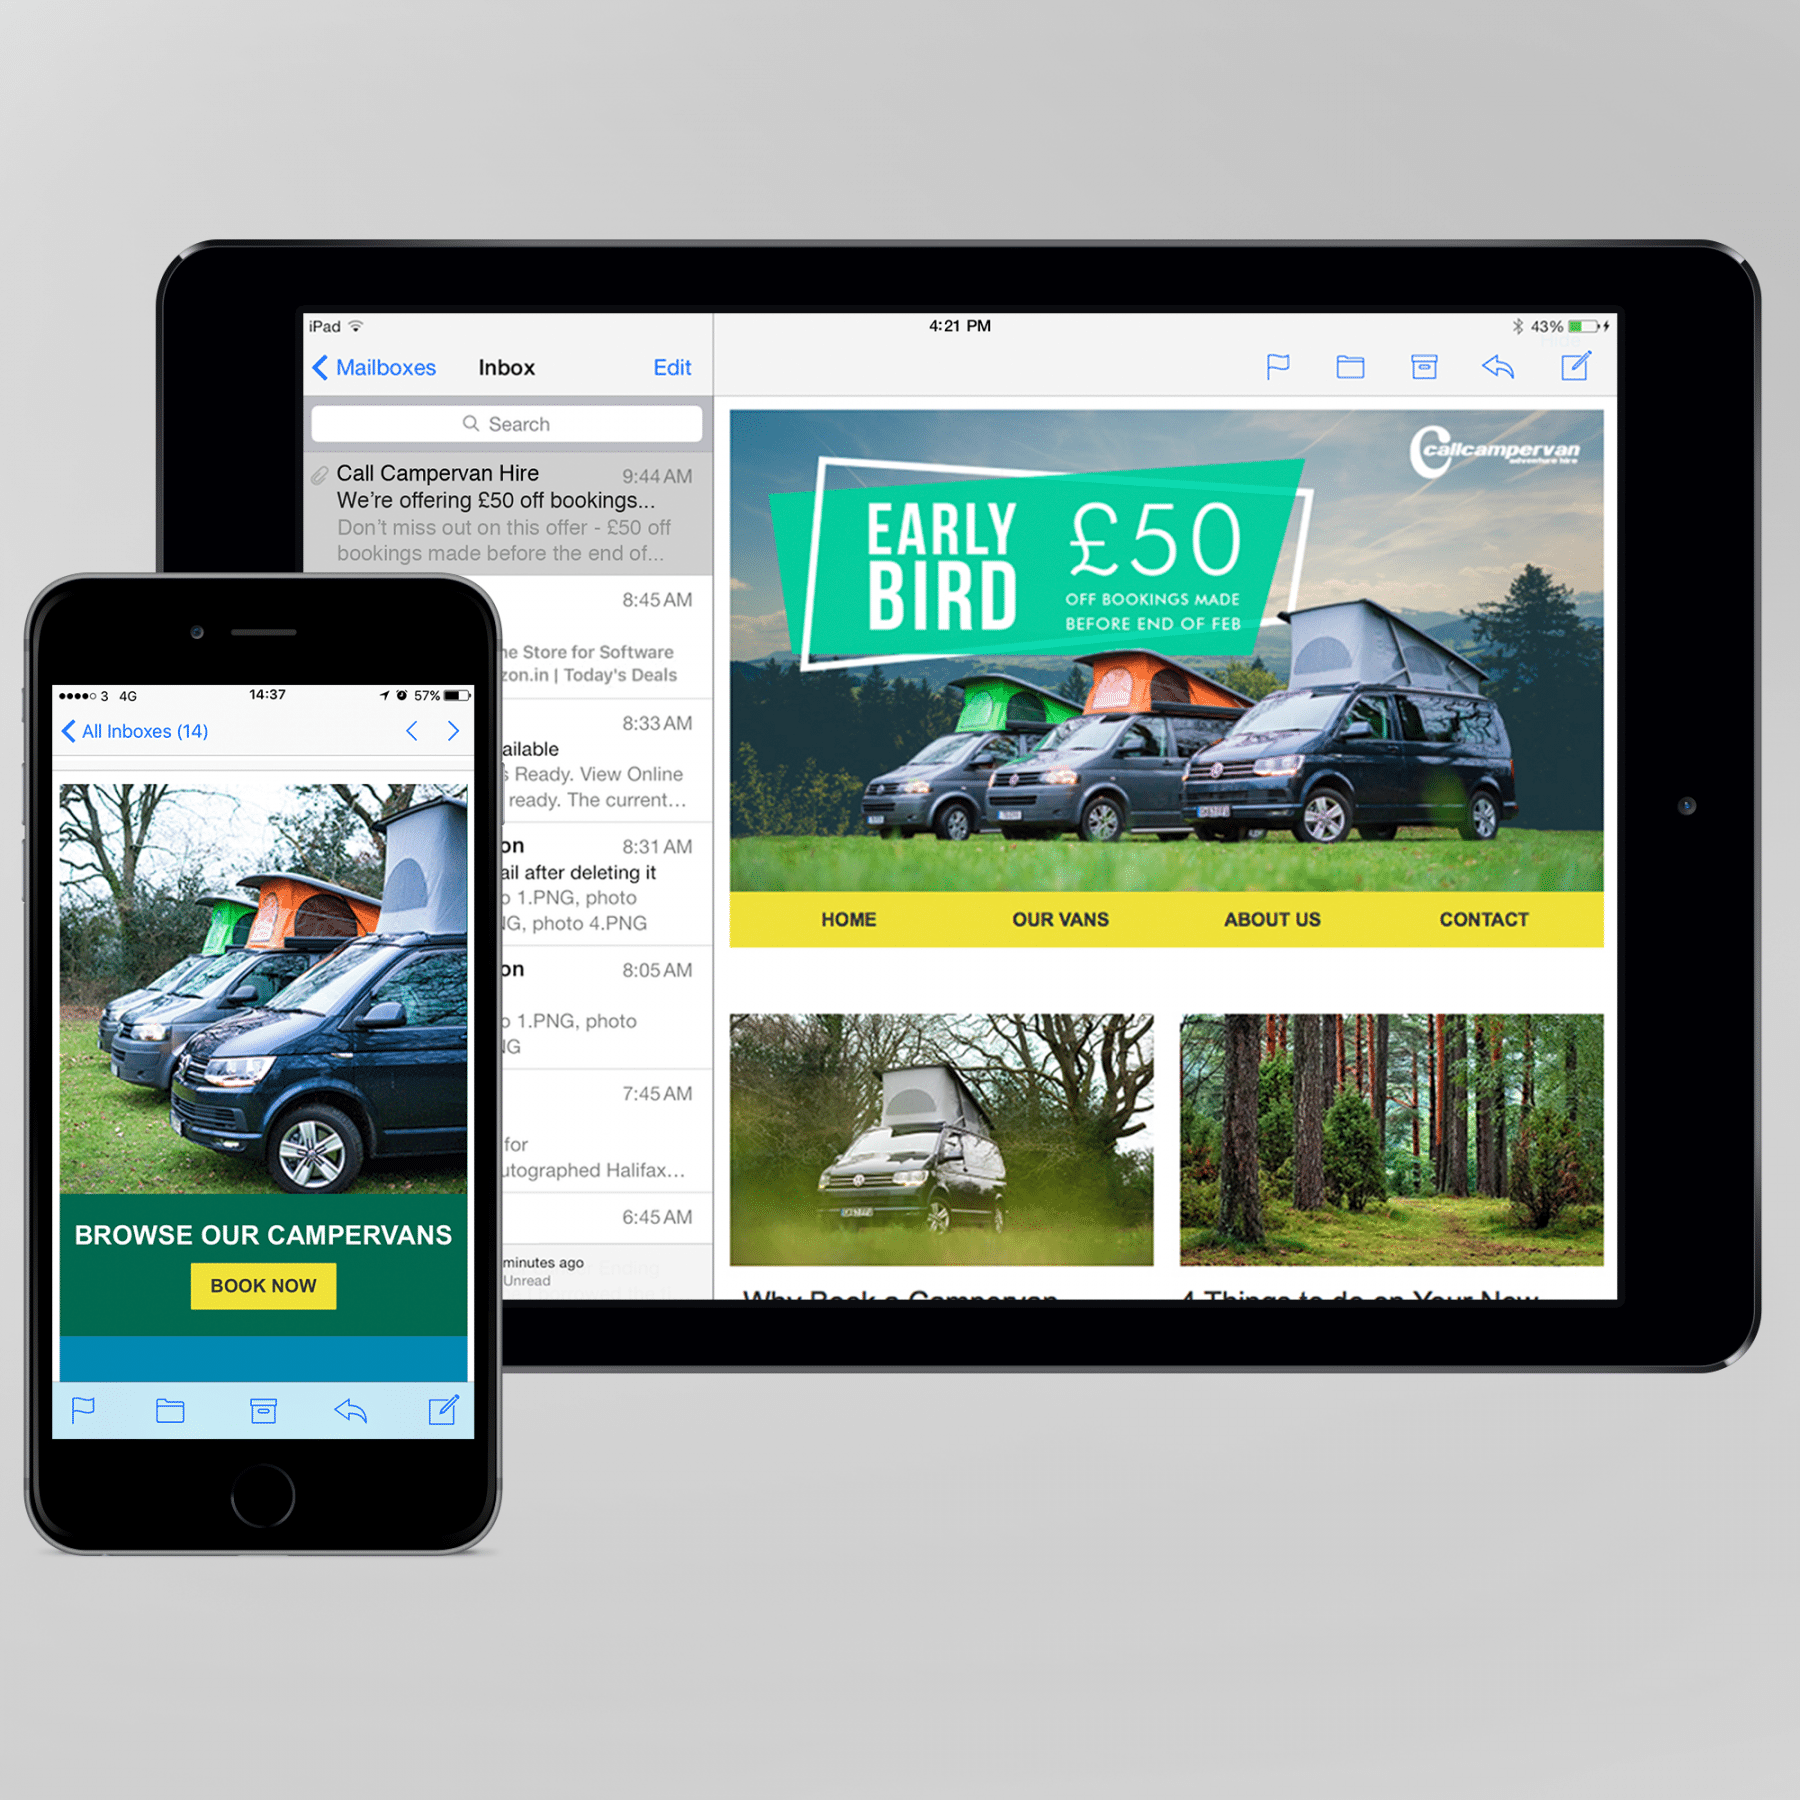 Call Campervan Hire email design on iPhone and iPad